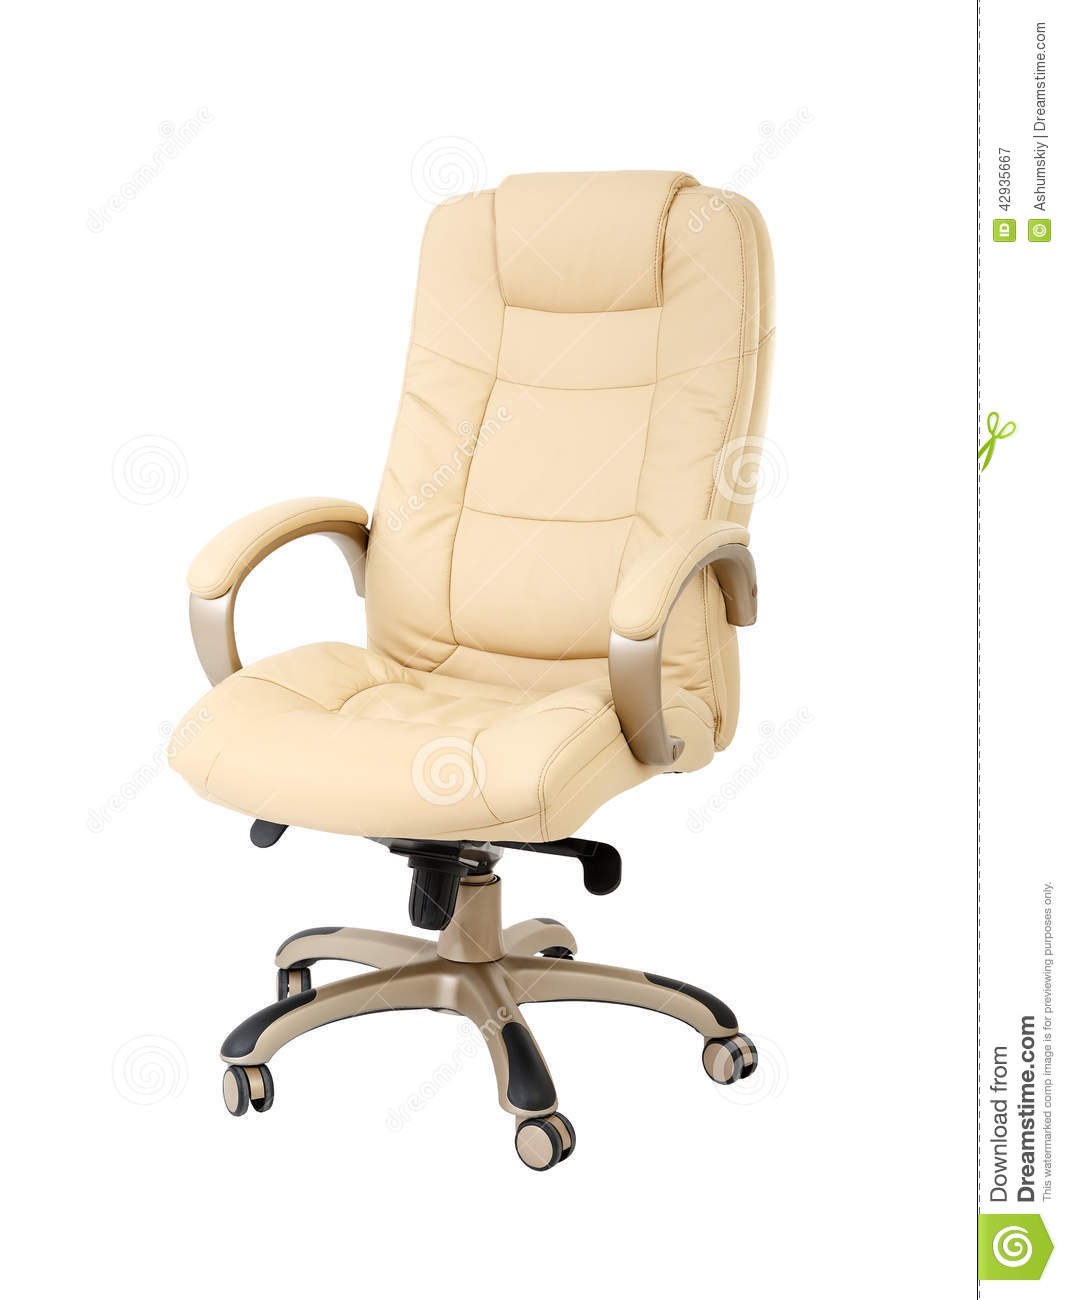 The Office Chair From Beige Leather Stock Image Image Of